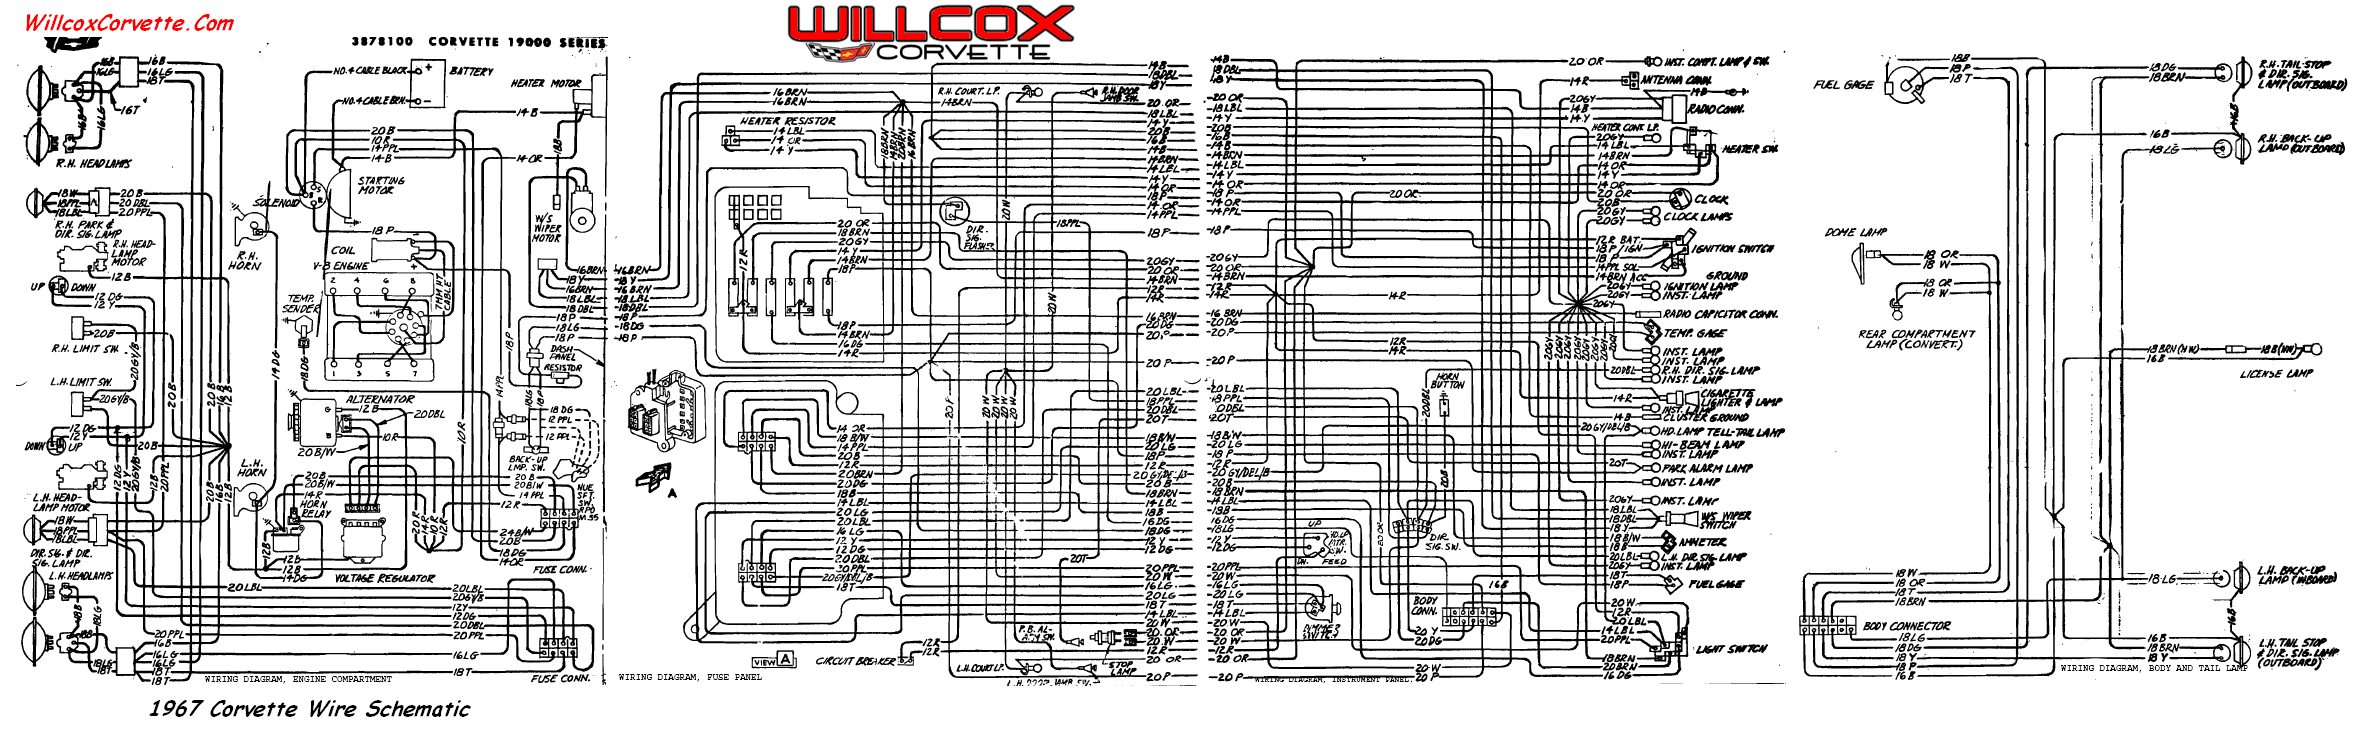 67 wire schematic for tracing wires wiring diagram for 1966 corvette readingrat net 66 Corvette at crackthecode.co